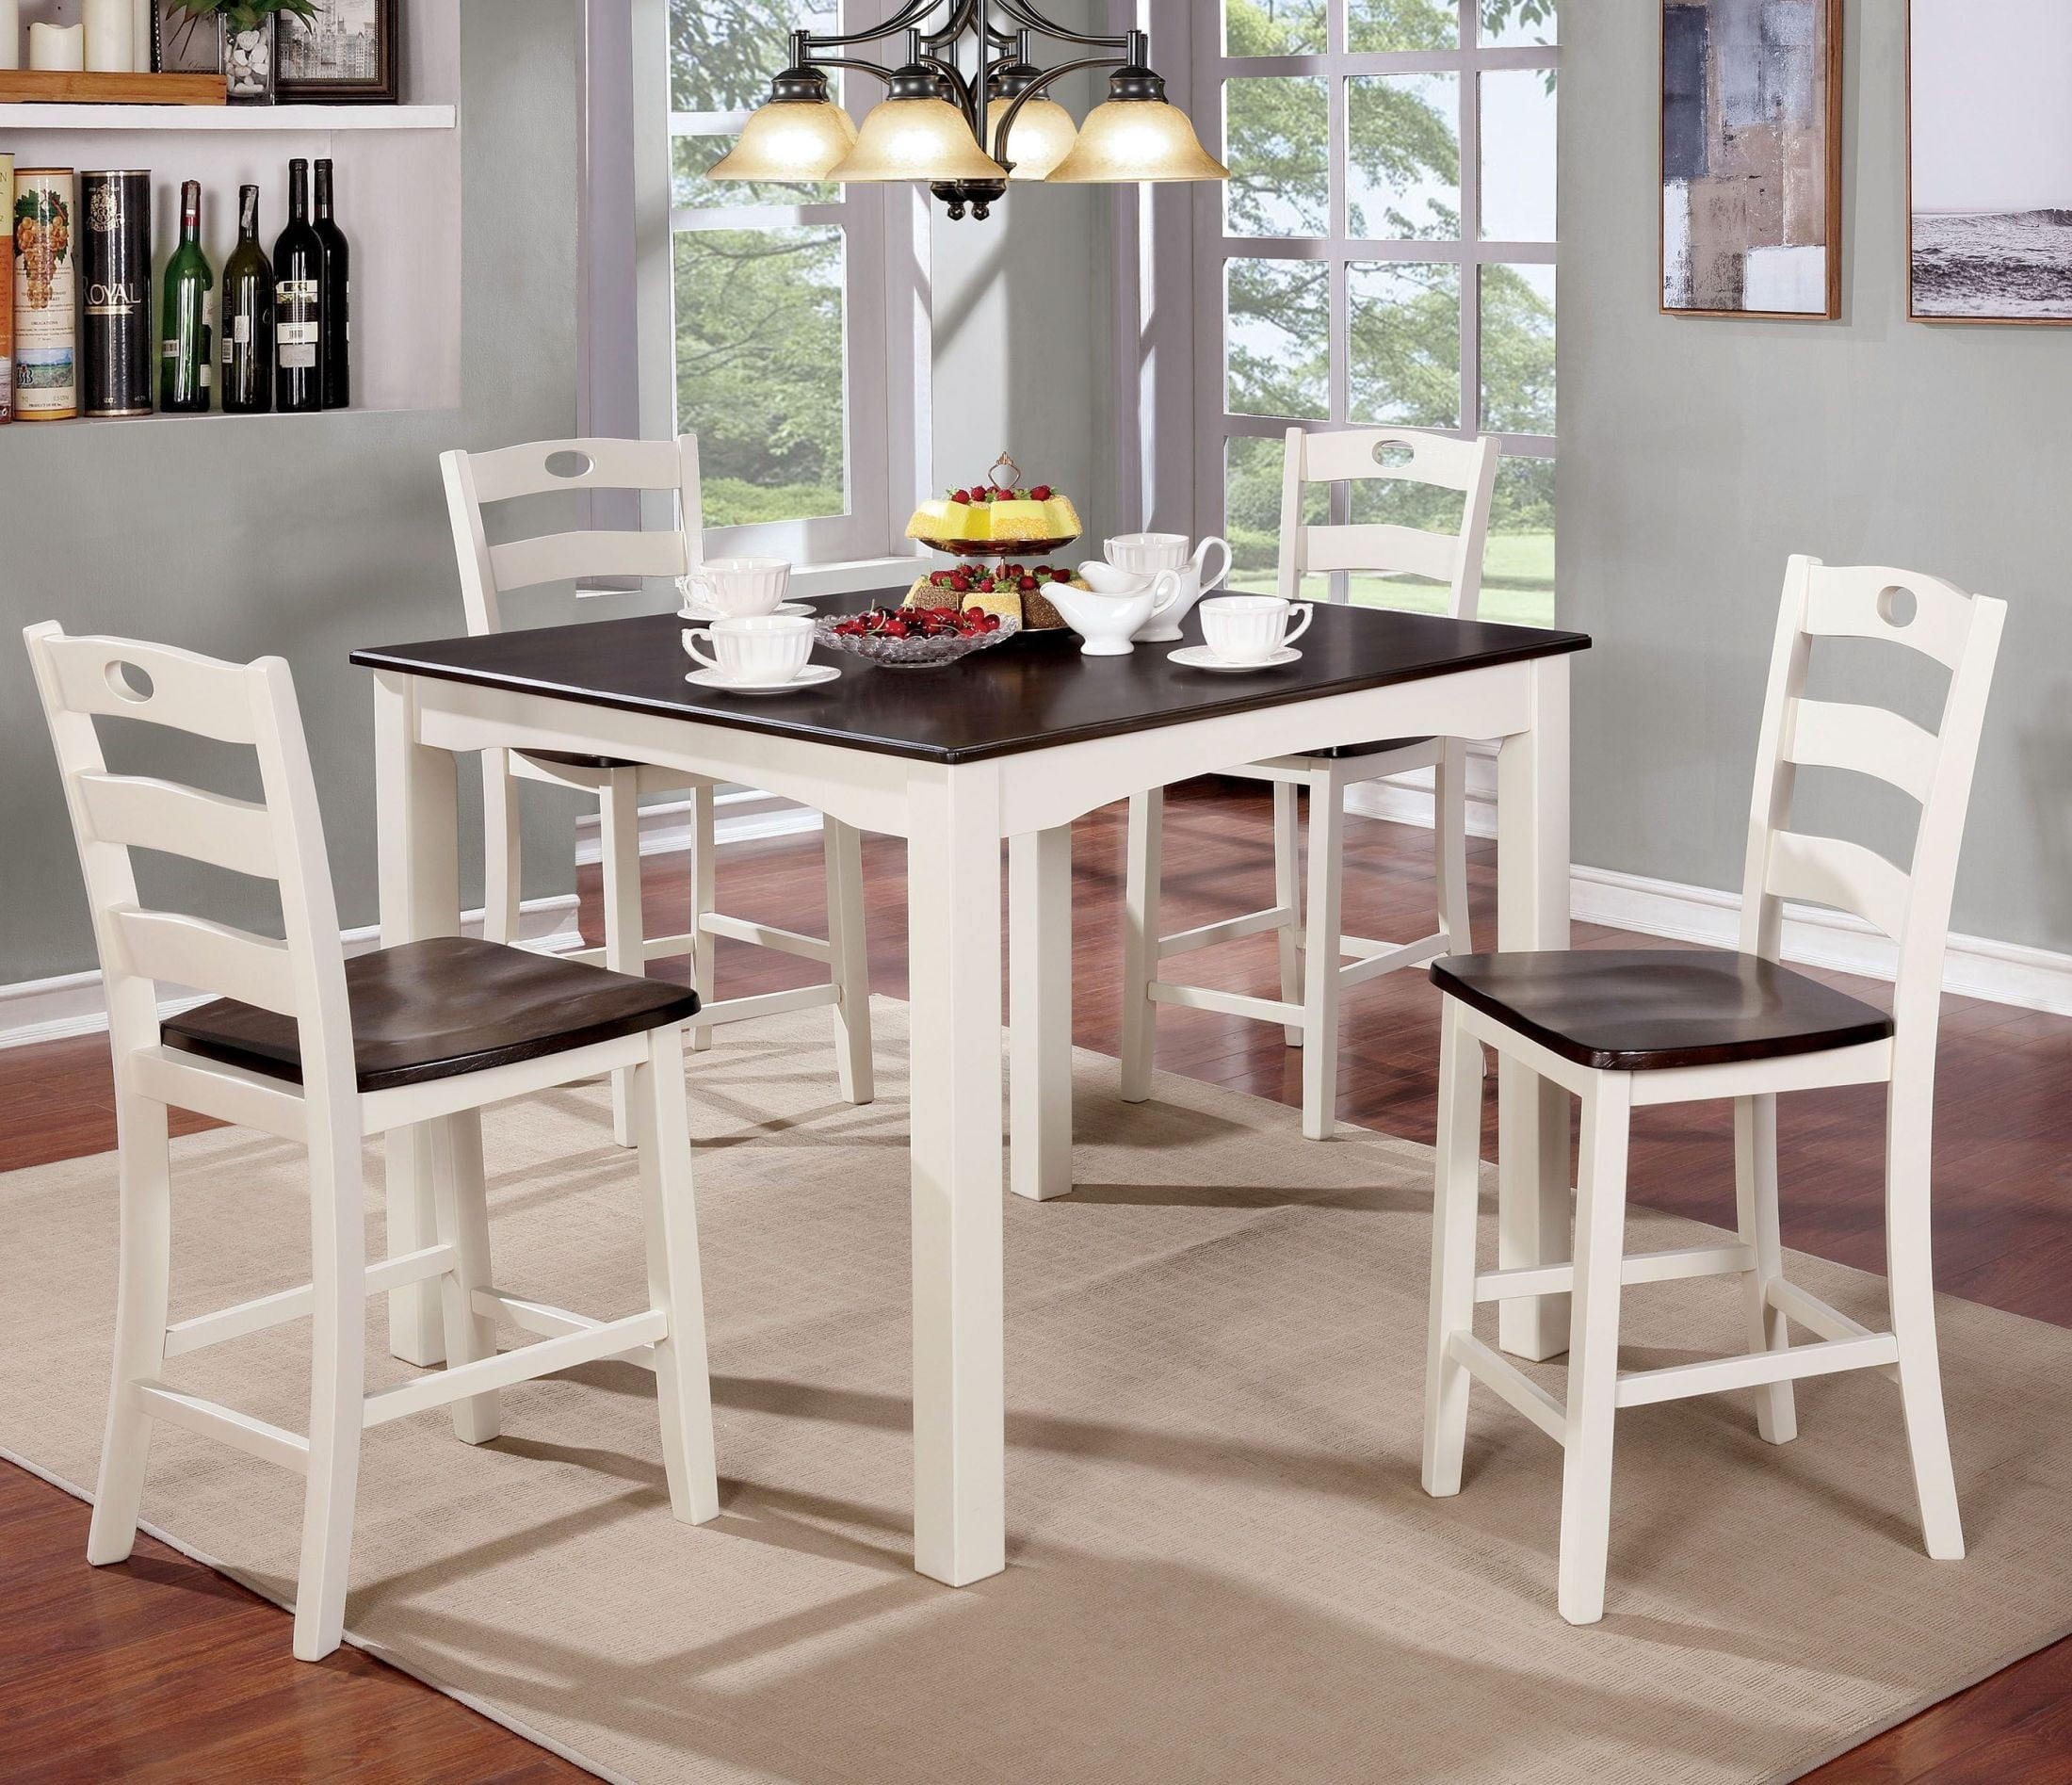 liliana 5 piece white and walnut counter height table set from furniture of america coleman. Black Bedroom Furniture Sets. Home Design Ideas